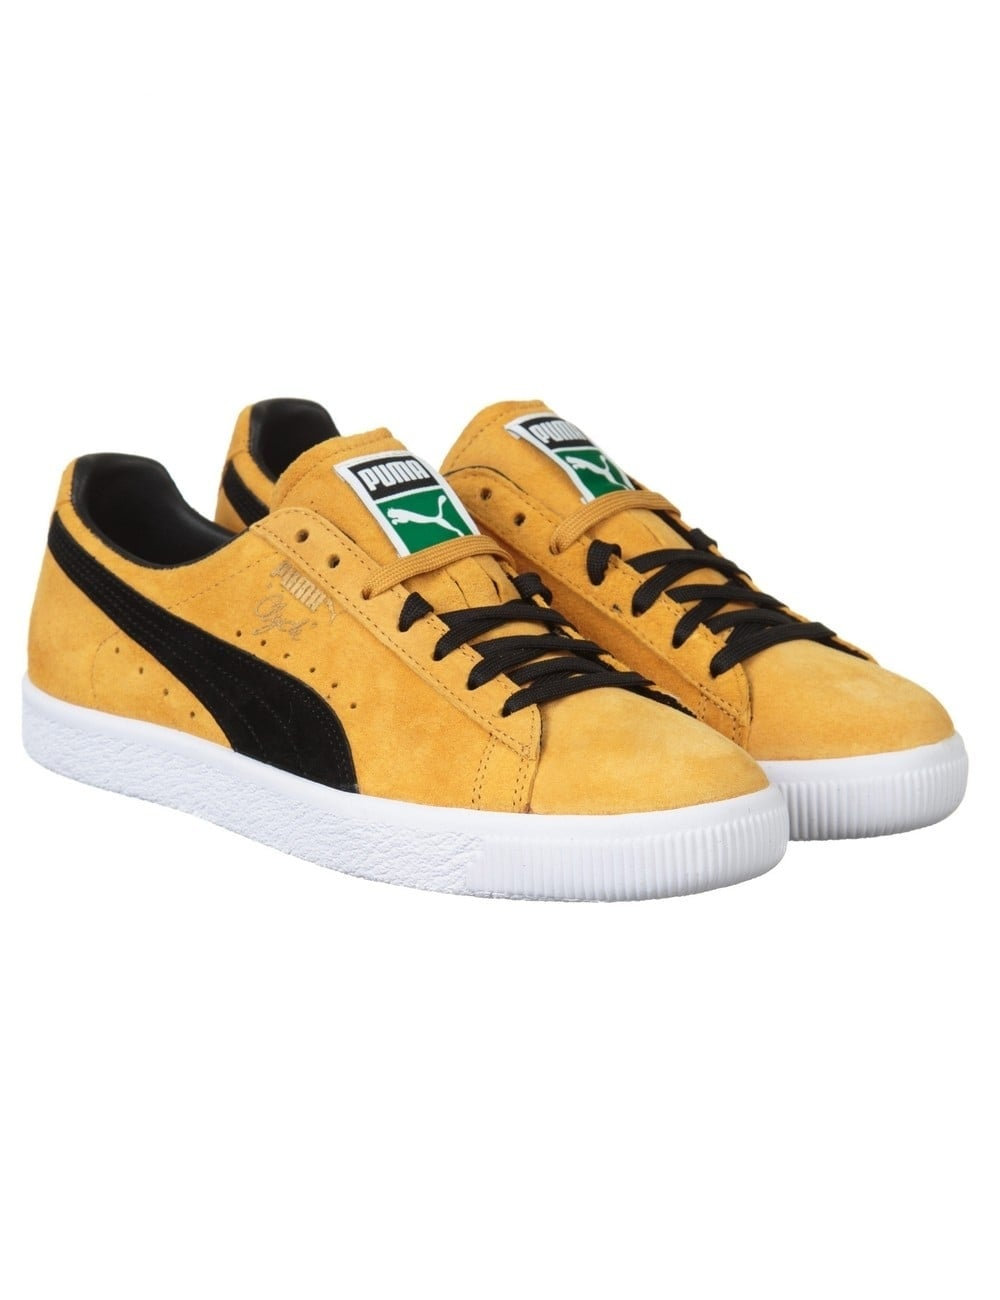 new arrival 2f2b3 037ef Clyde OG Shoes - Gold/Black (Flag Pack)